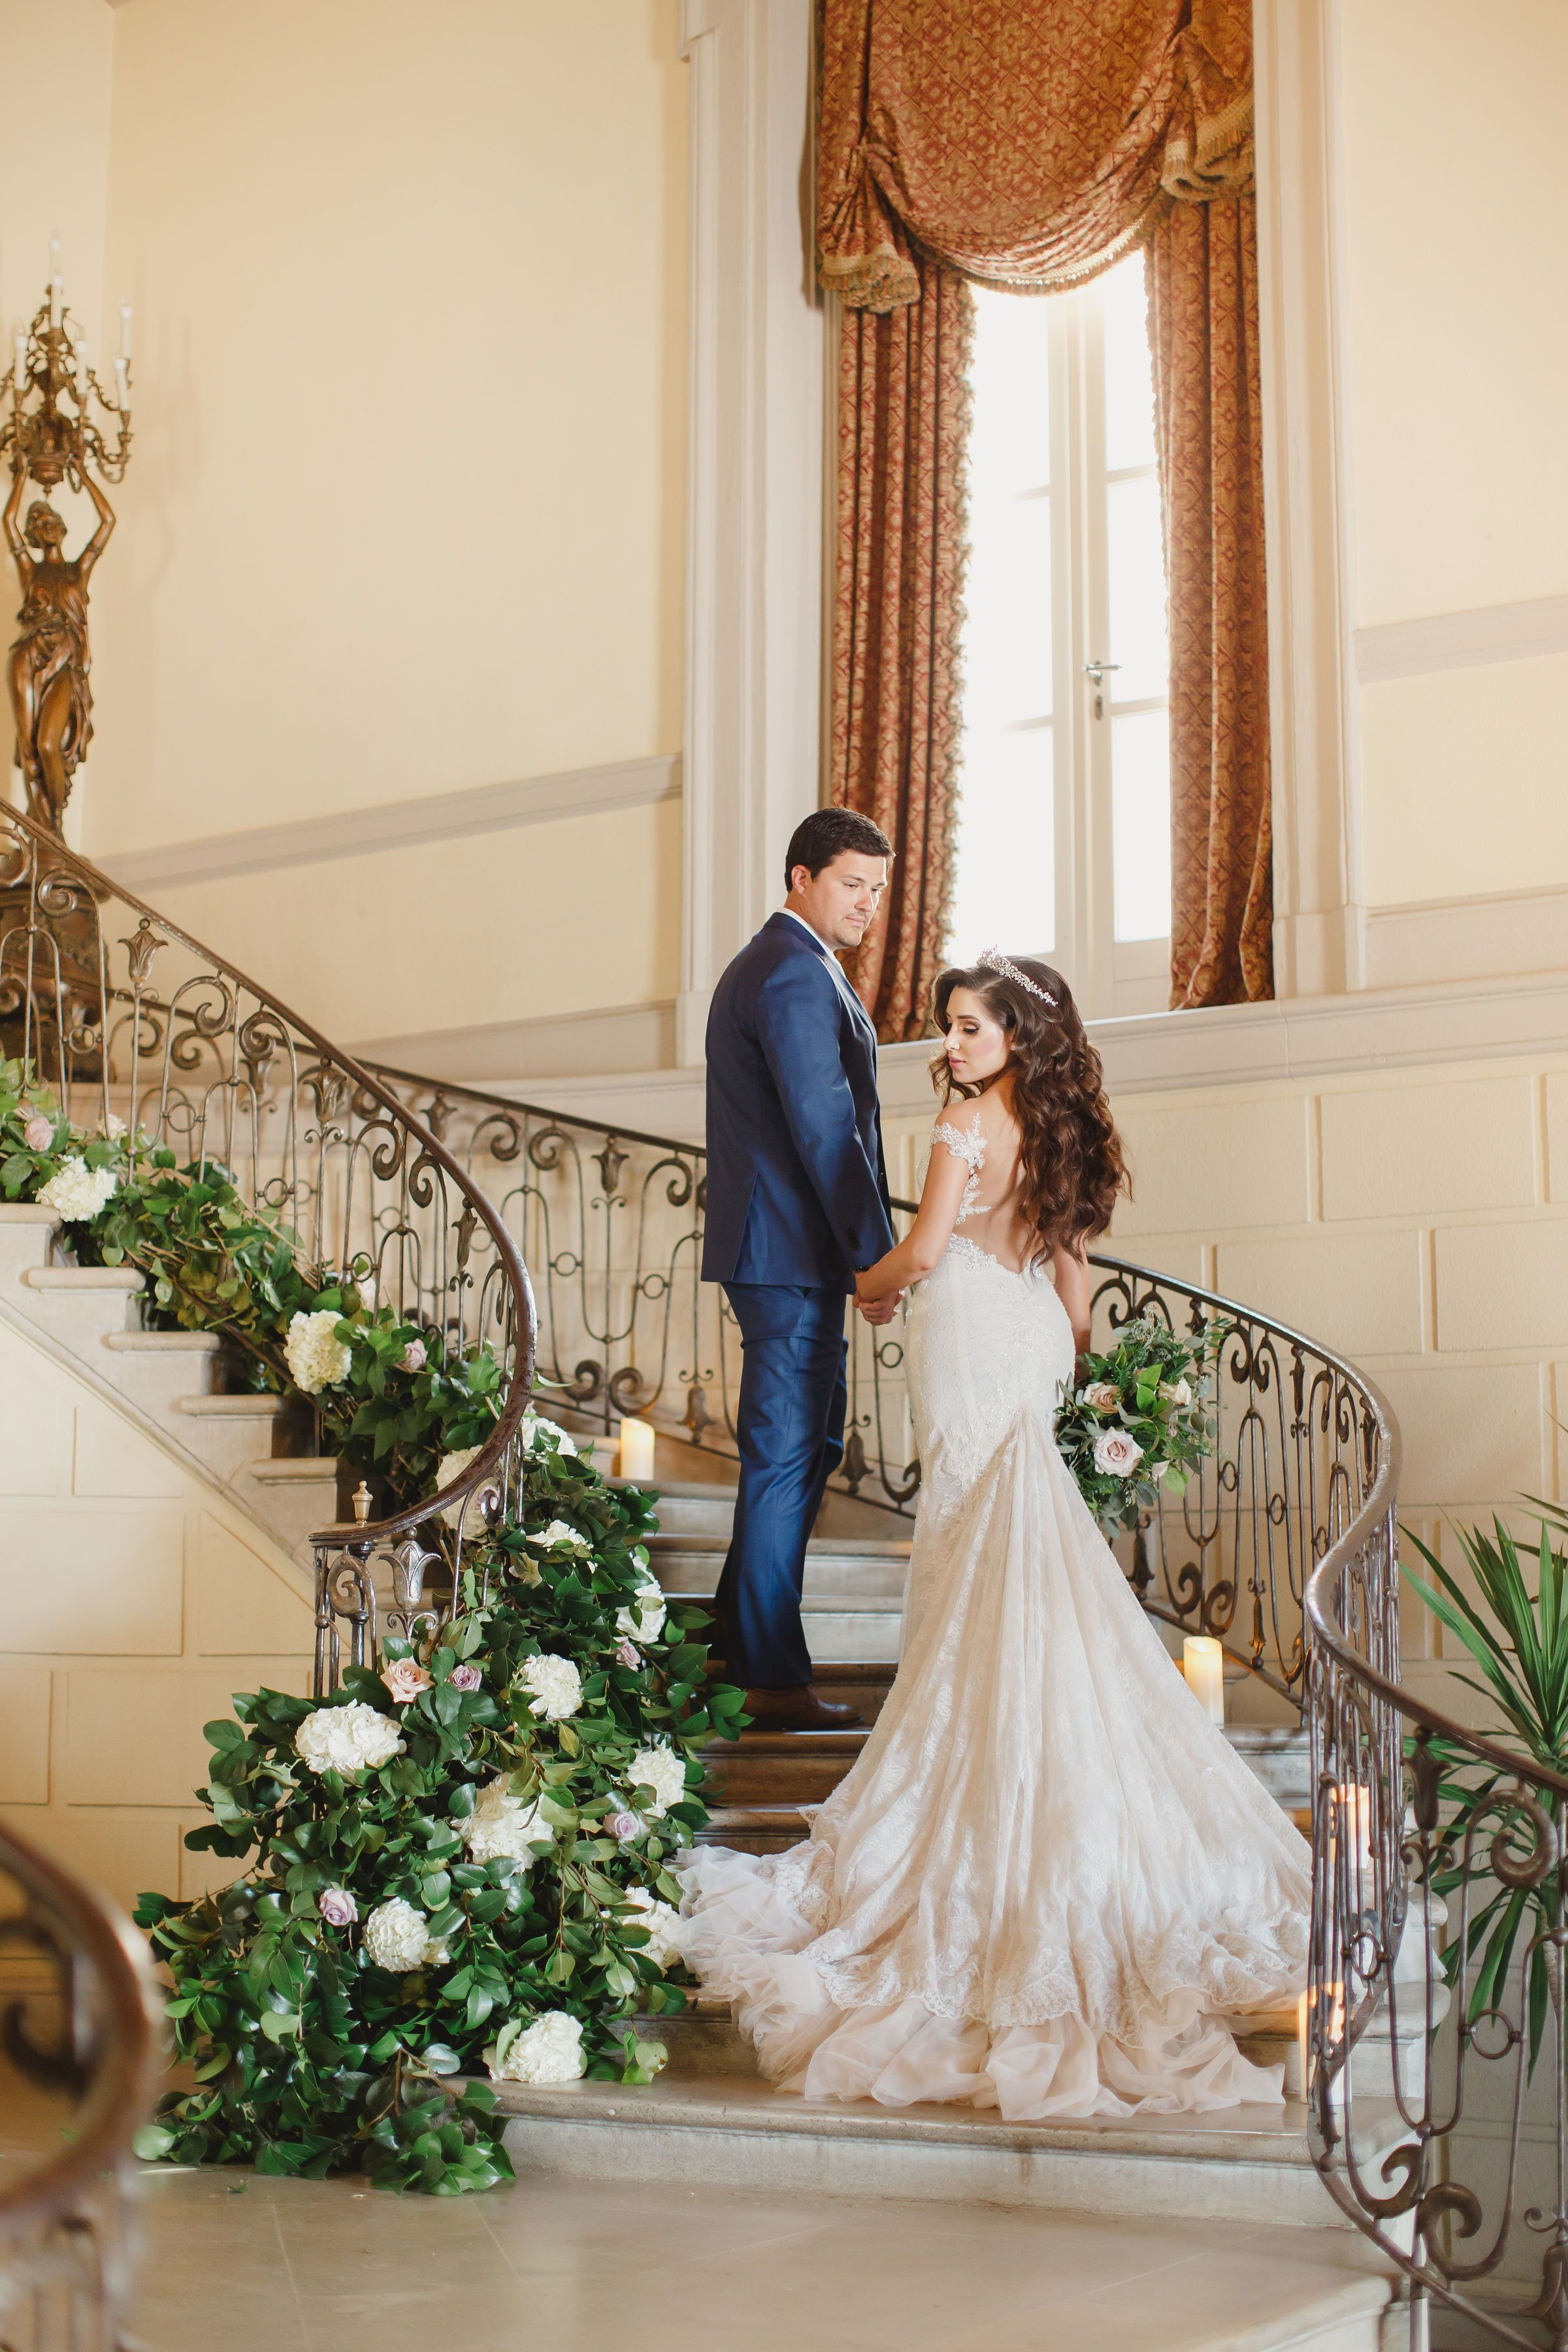 Fairytale Wedding At Oheka Castle In Long Island Ny Bride And Groom Walking Up Staircase Covered In Gre Oheka Castle Wedding Photography Bride Wedding Photos